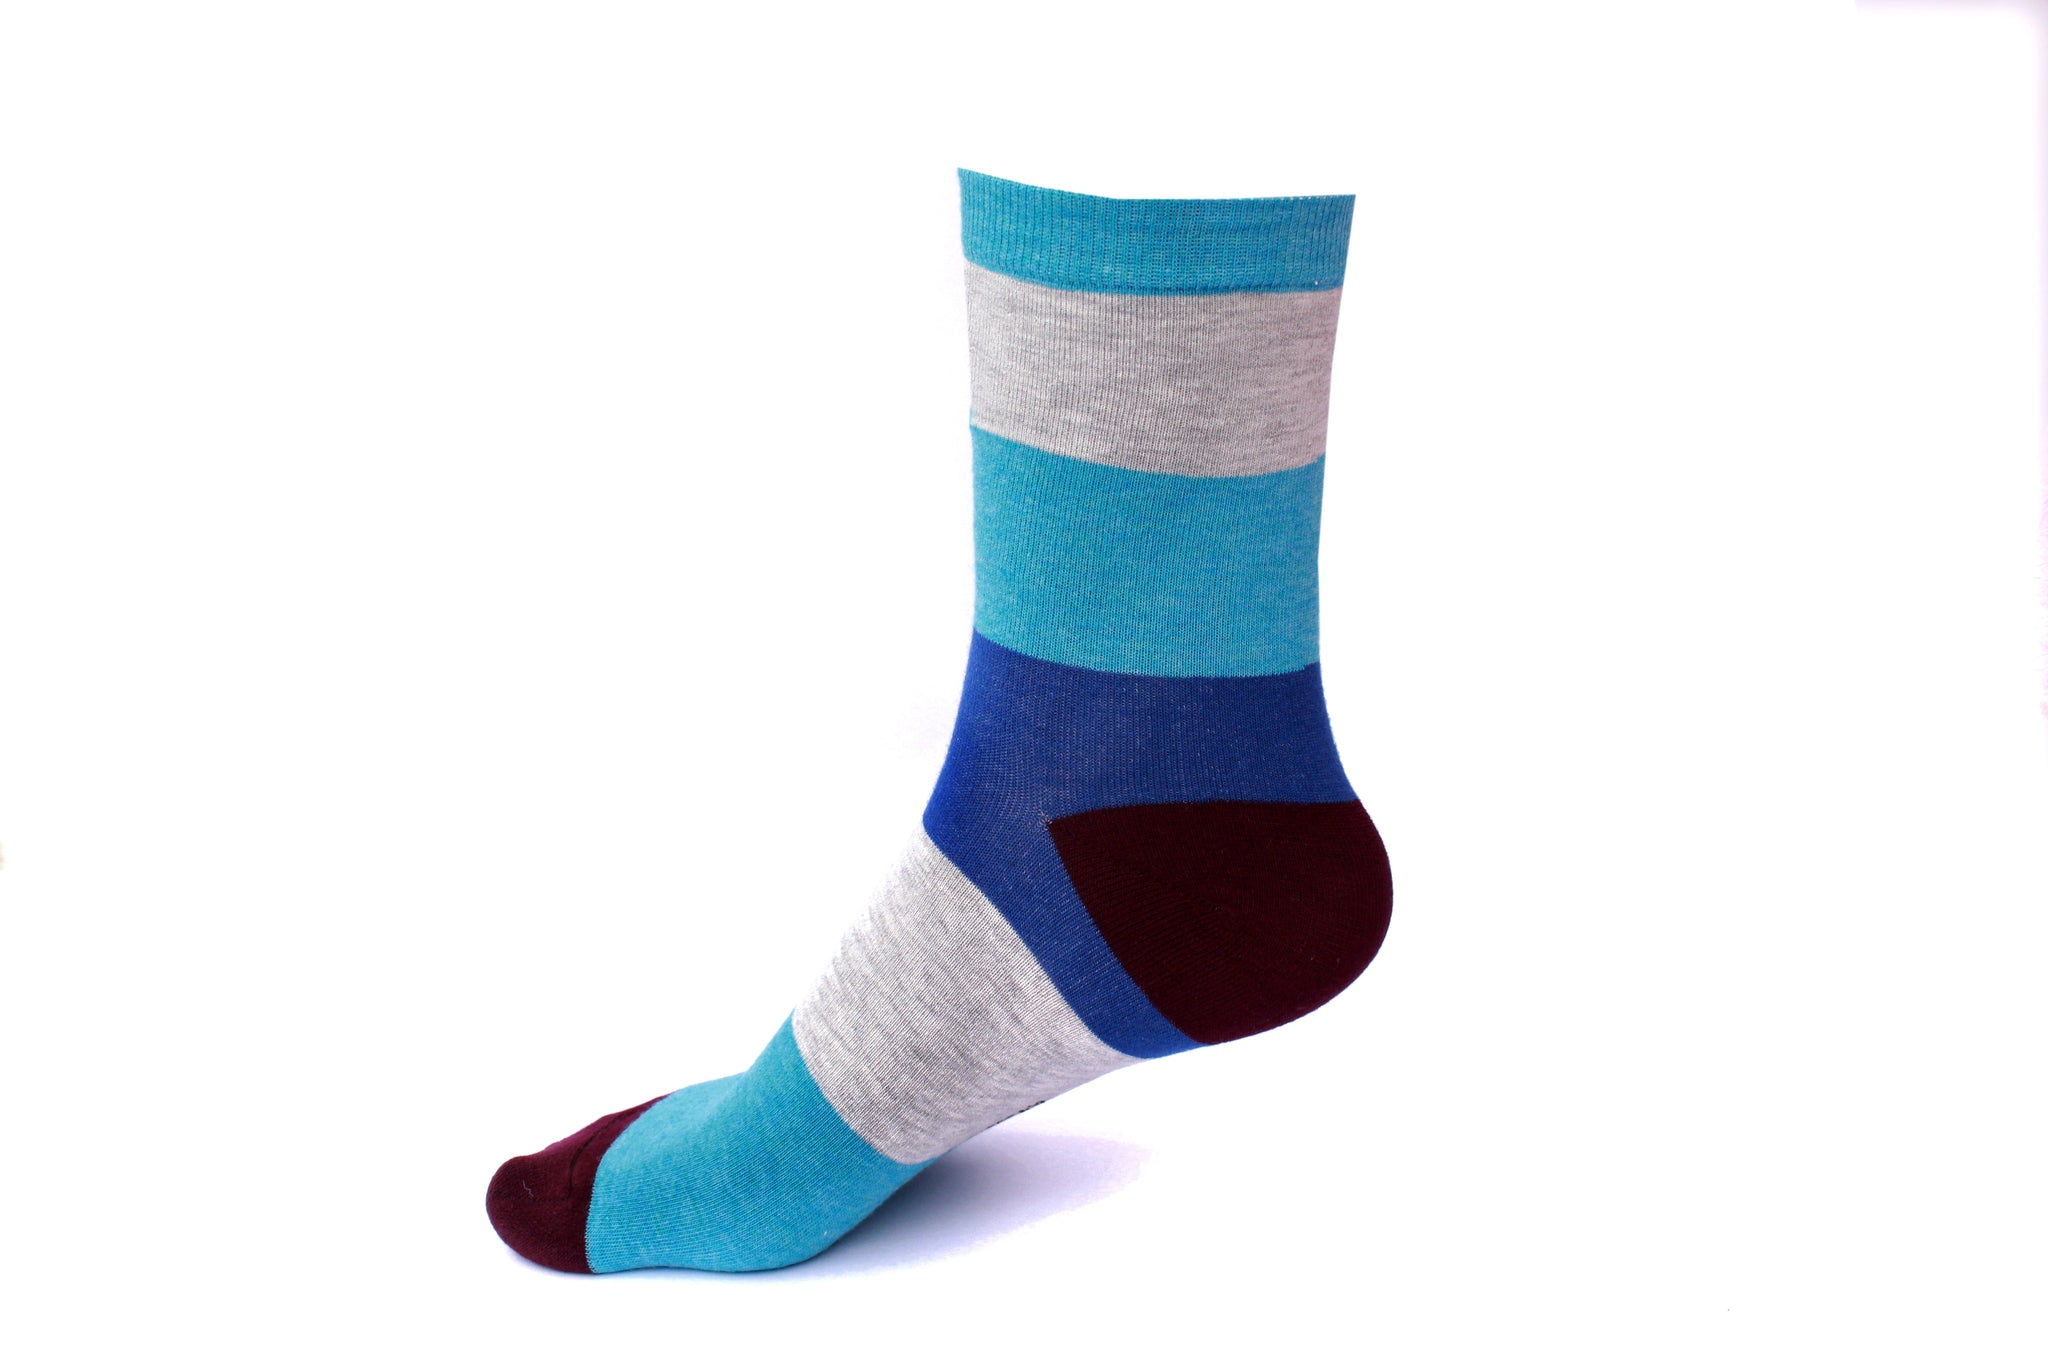 Men's Niagara Cotton Breathable socks